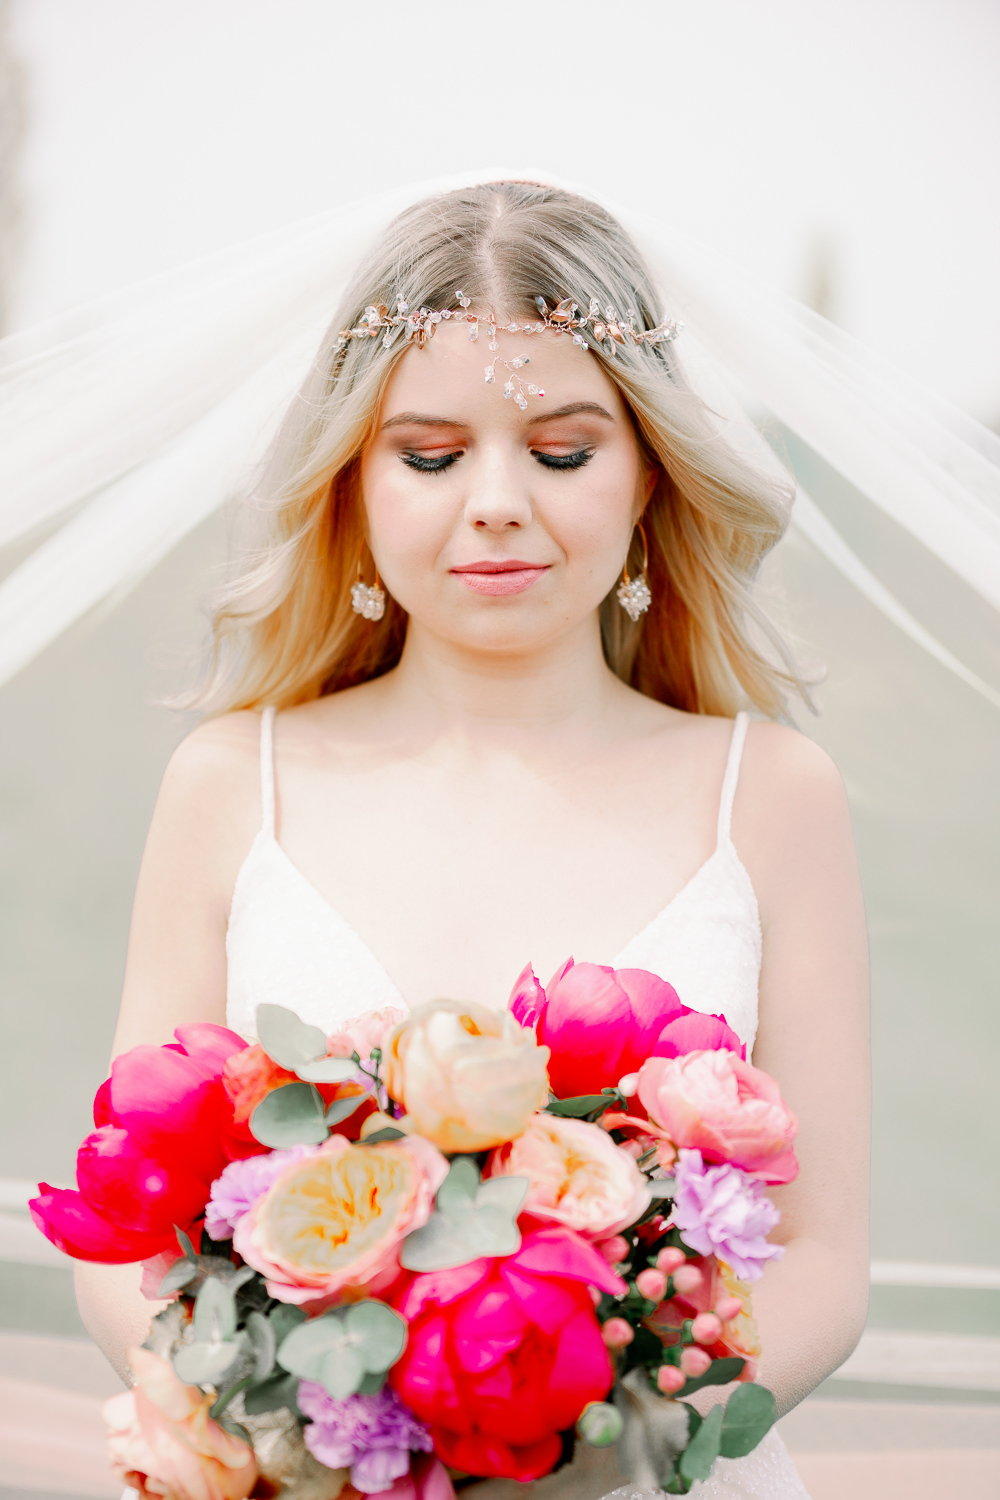 Bouquet Flowers Bride Bridal Peony Peonies Rose Ribbon Bride Bridal Make Up Headdress Accessory Veil Coral Peach Wedding Ideas Courtney Dee Photography